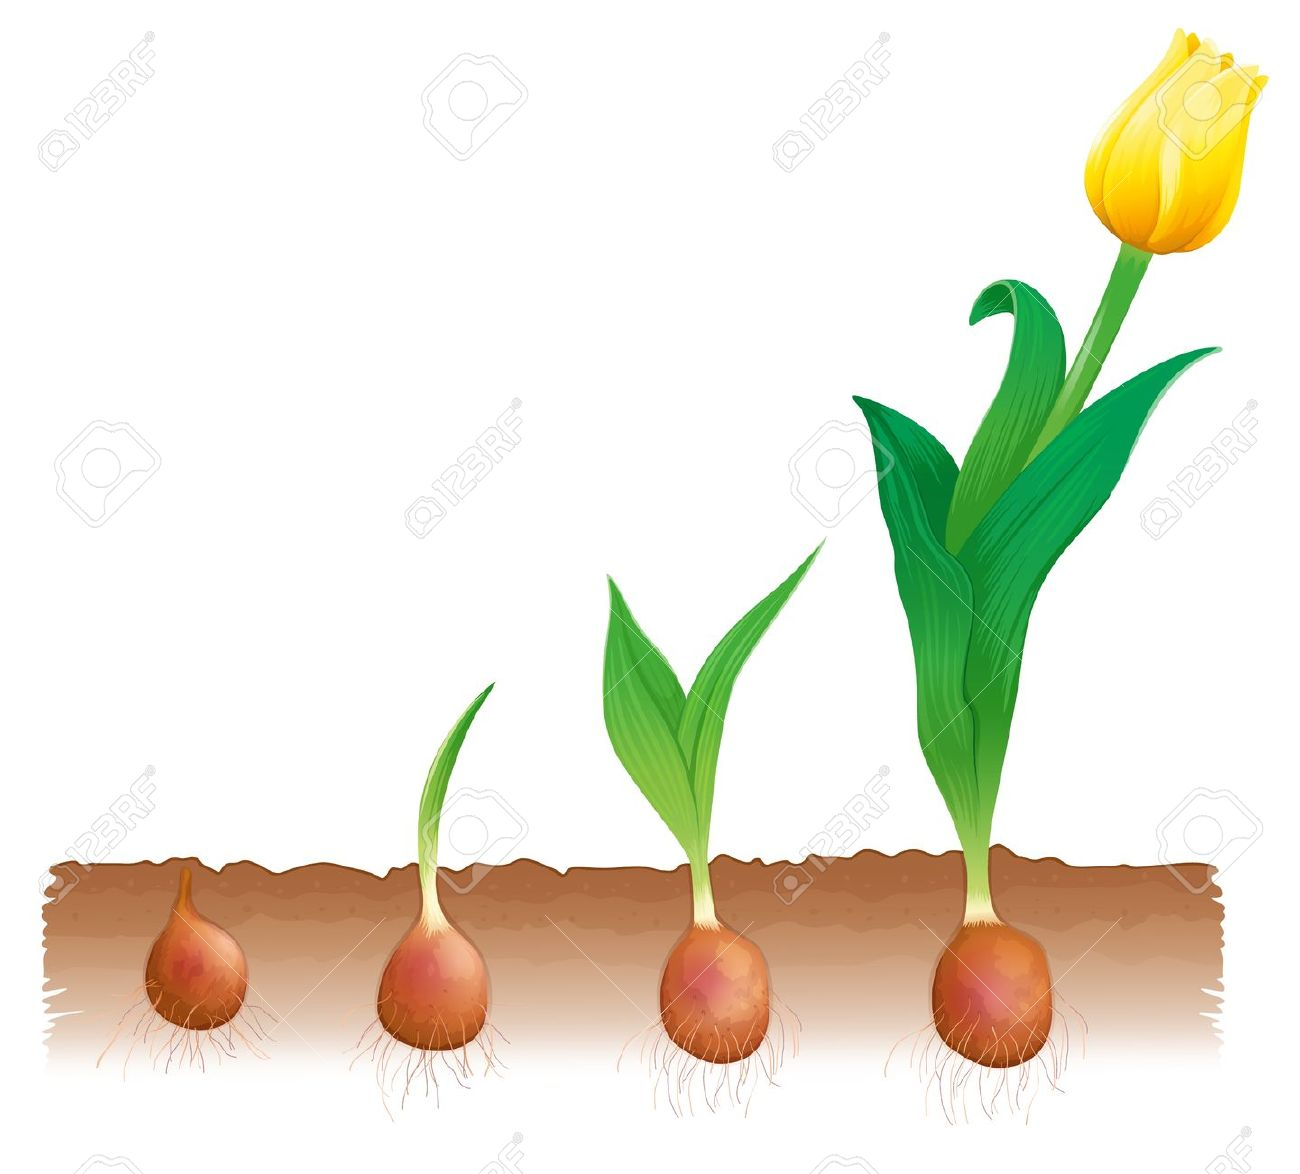 Flower growing stages clipart.